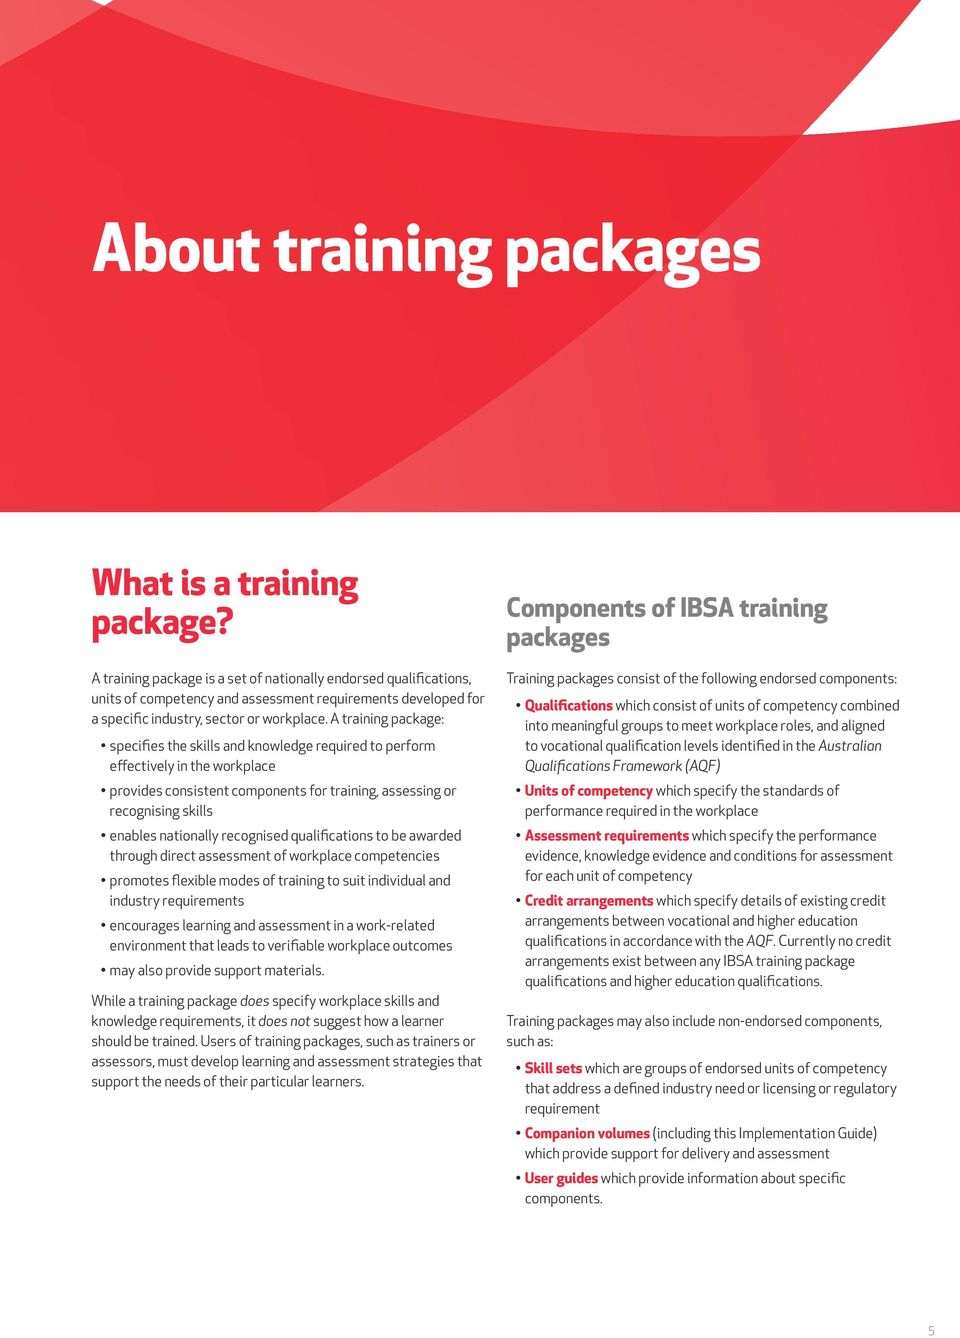 A training package: specifies the skills and knowledge required to perform effectively in the workplace provides consistent components for training, assessing or recognising skills enables nationally